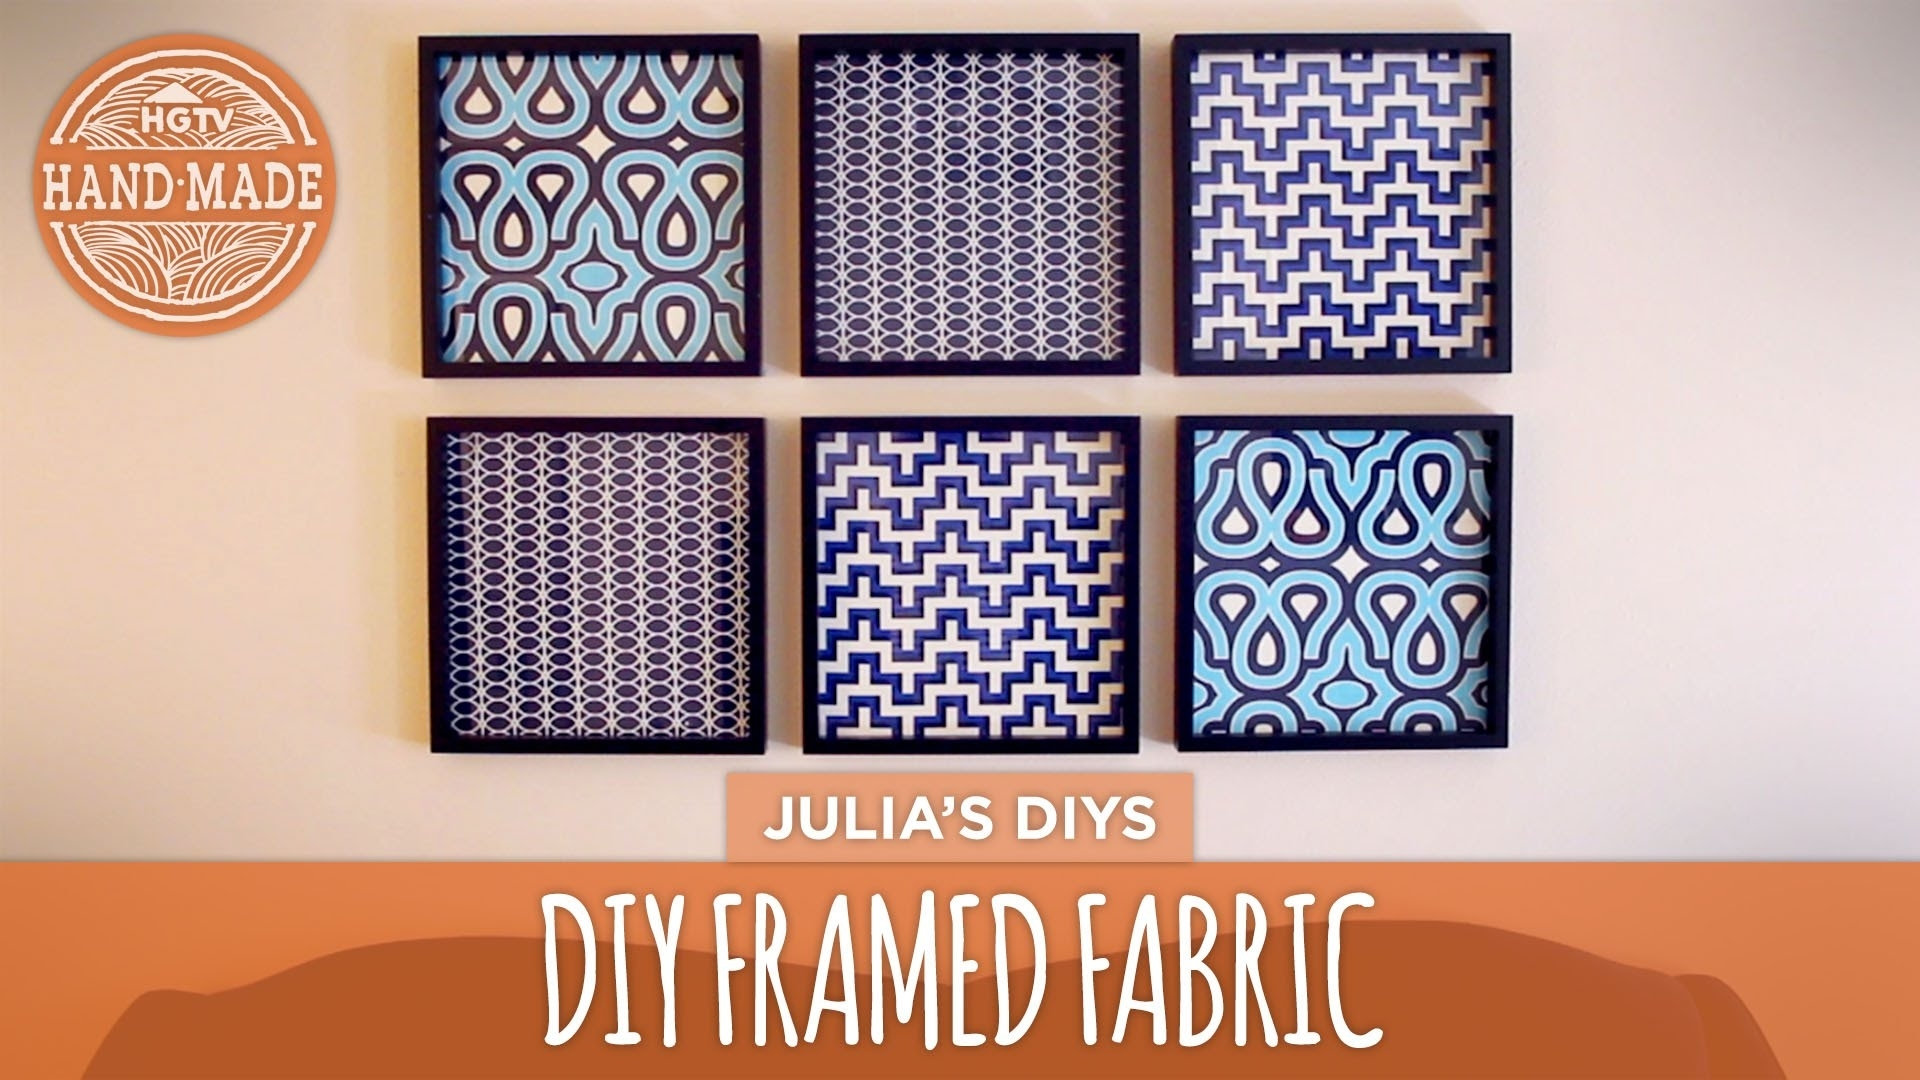 Diy Fabric Wall Art Panels Do It Your Self – Super Tech Inside Most Recent Diy Fabric Wall Art Panels (View 2 of 15)